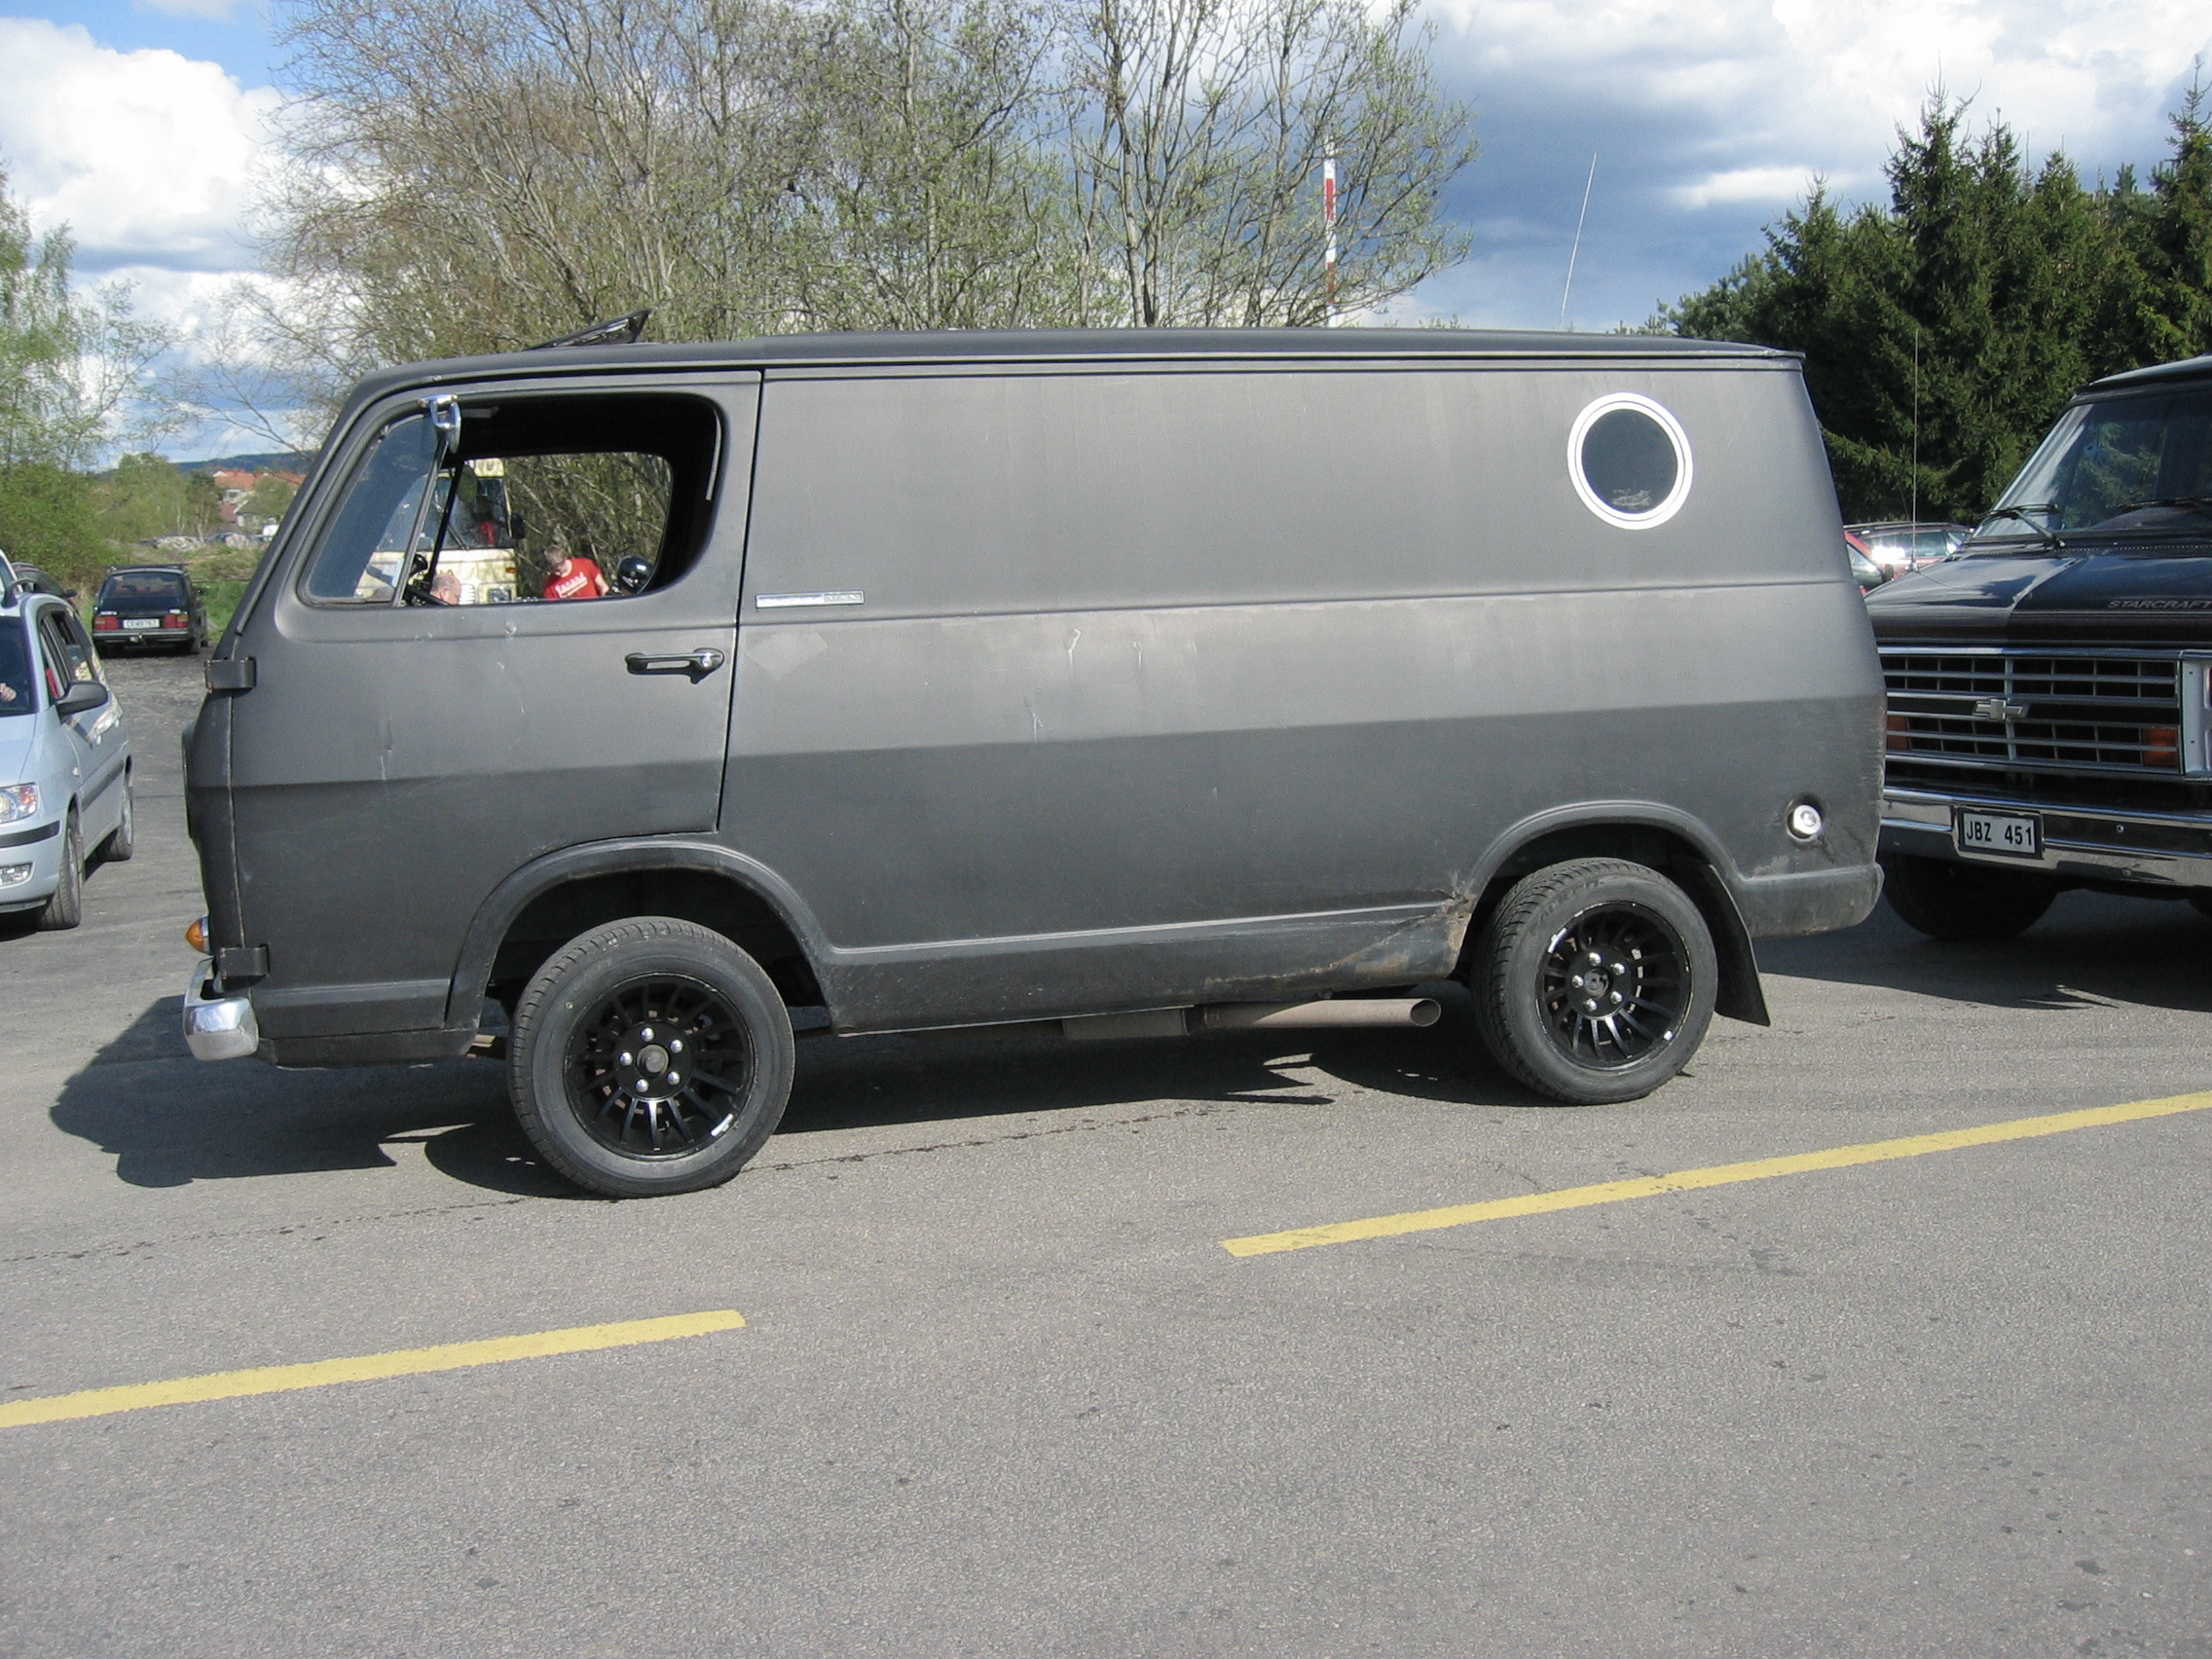 Craigslist 1966 Chevy Van | Autos Post